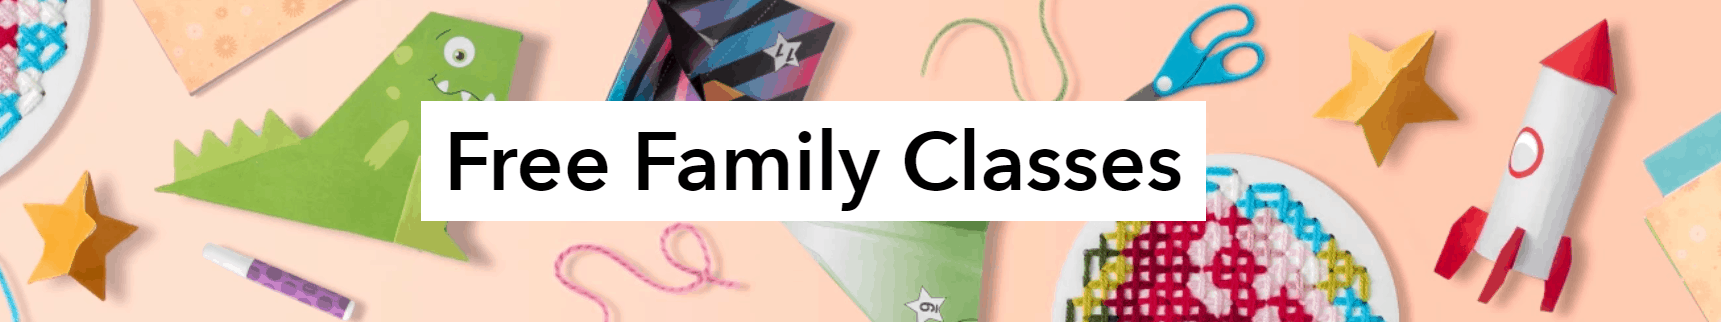 These are the family classes available through Bluprint free creativity care classes available online.